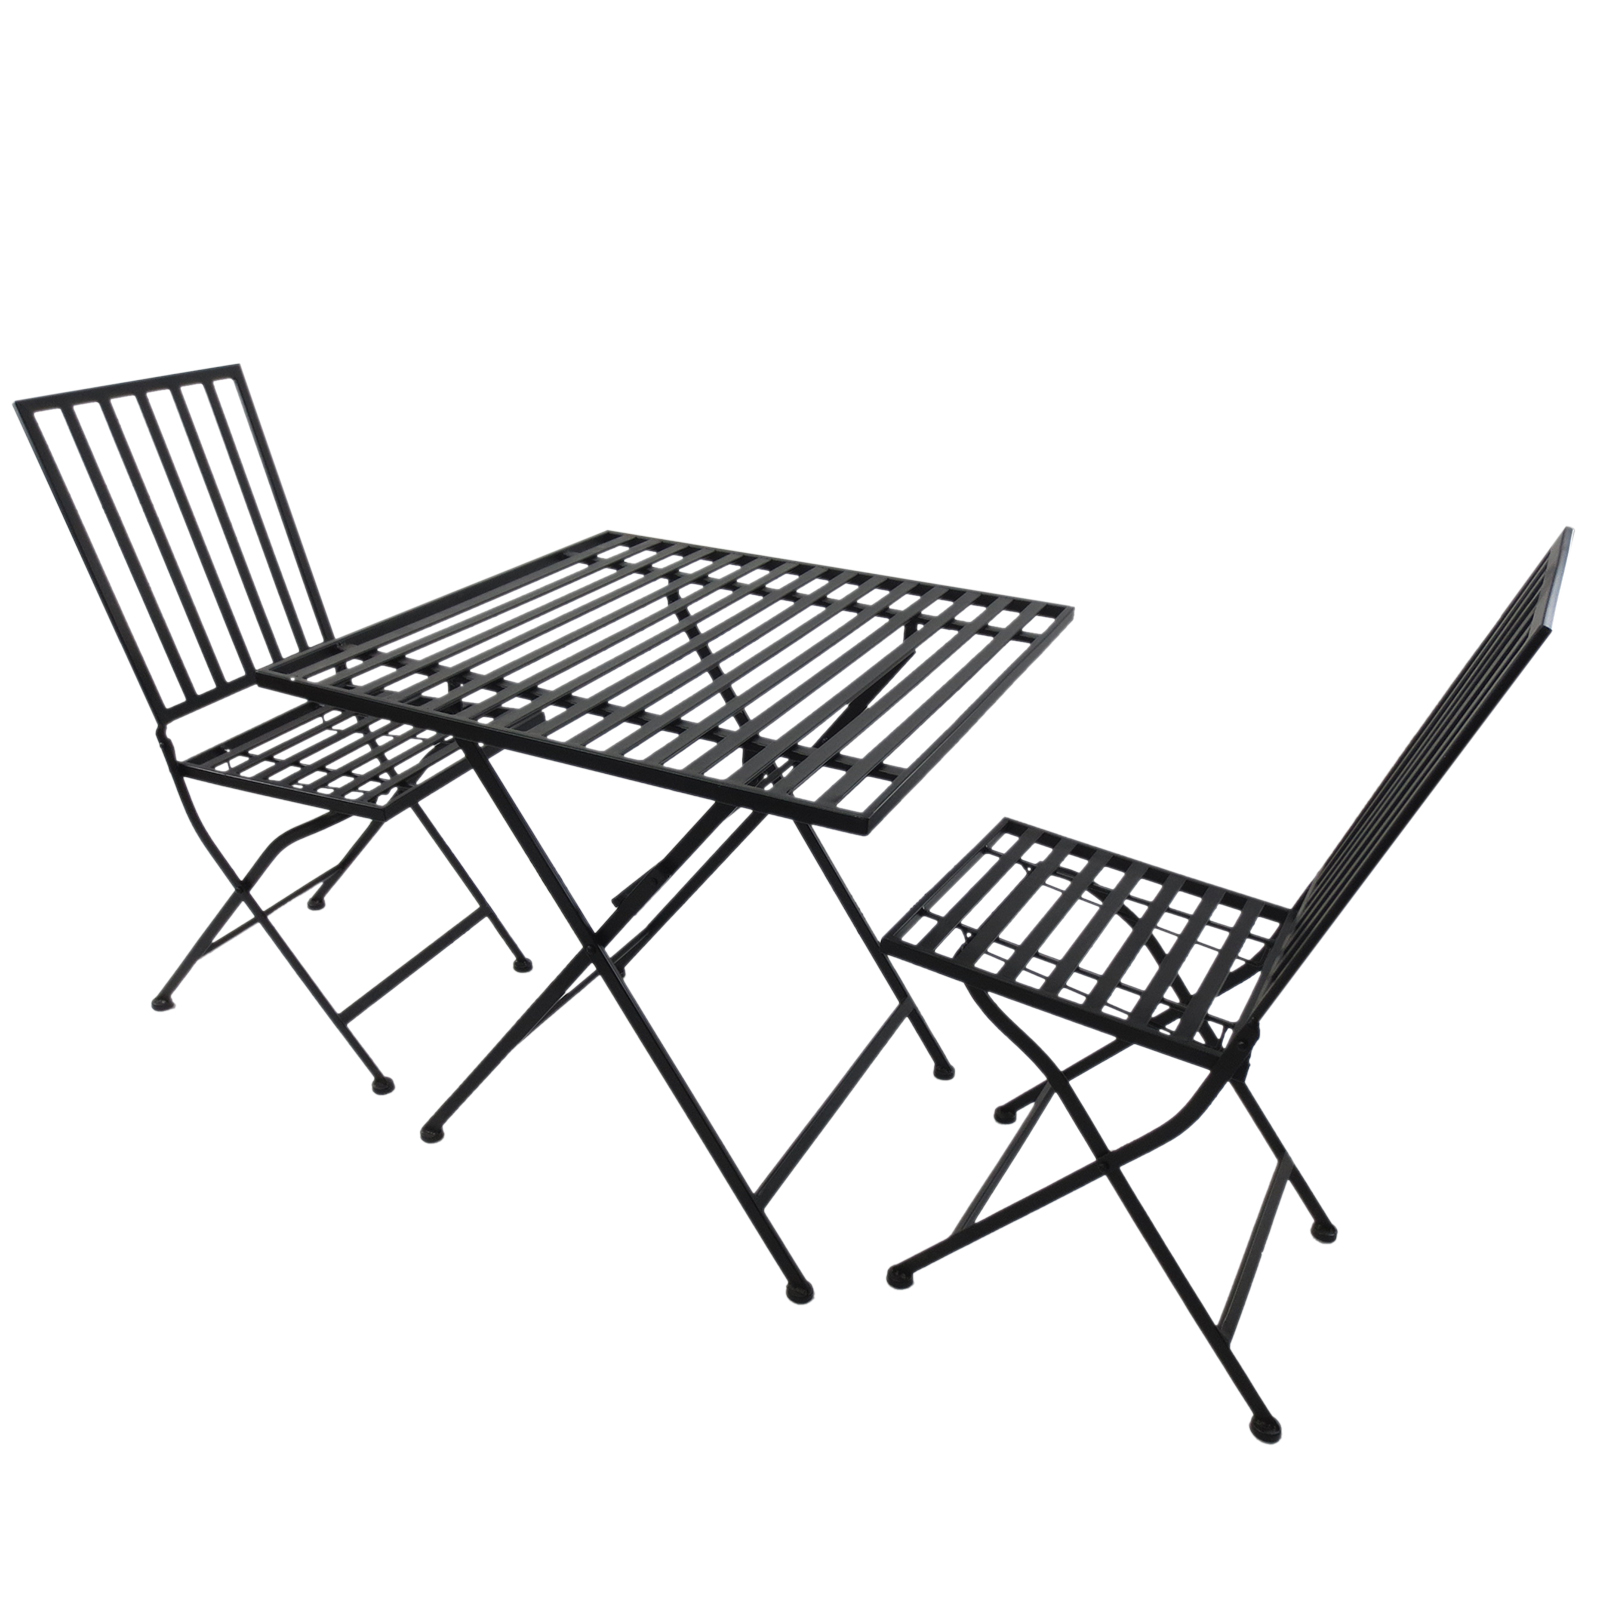 Outsunny 1 Set Furniture Table And 2 Chairs Folding Garden Mettallo 70x70x70 Cm Black